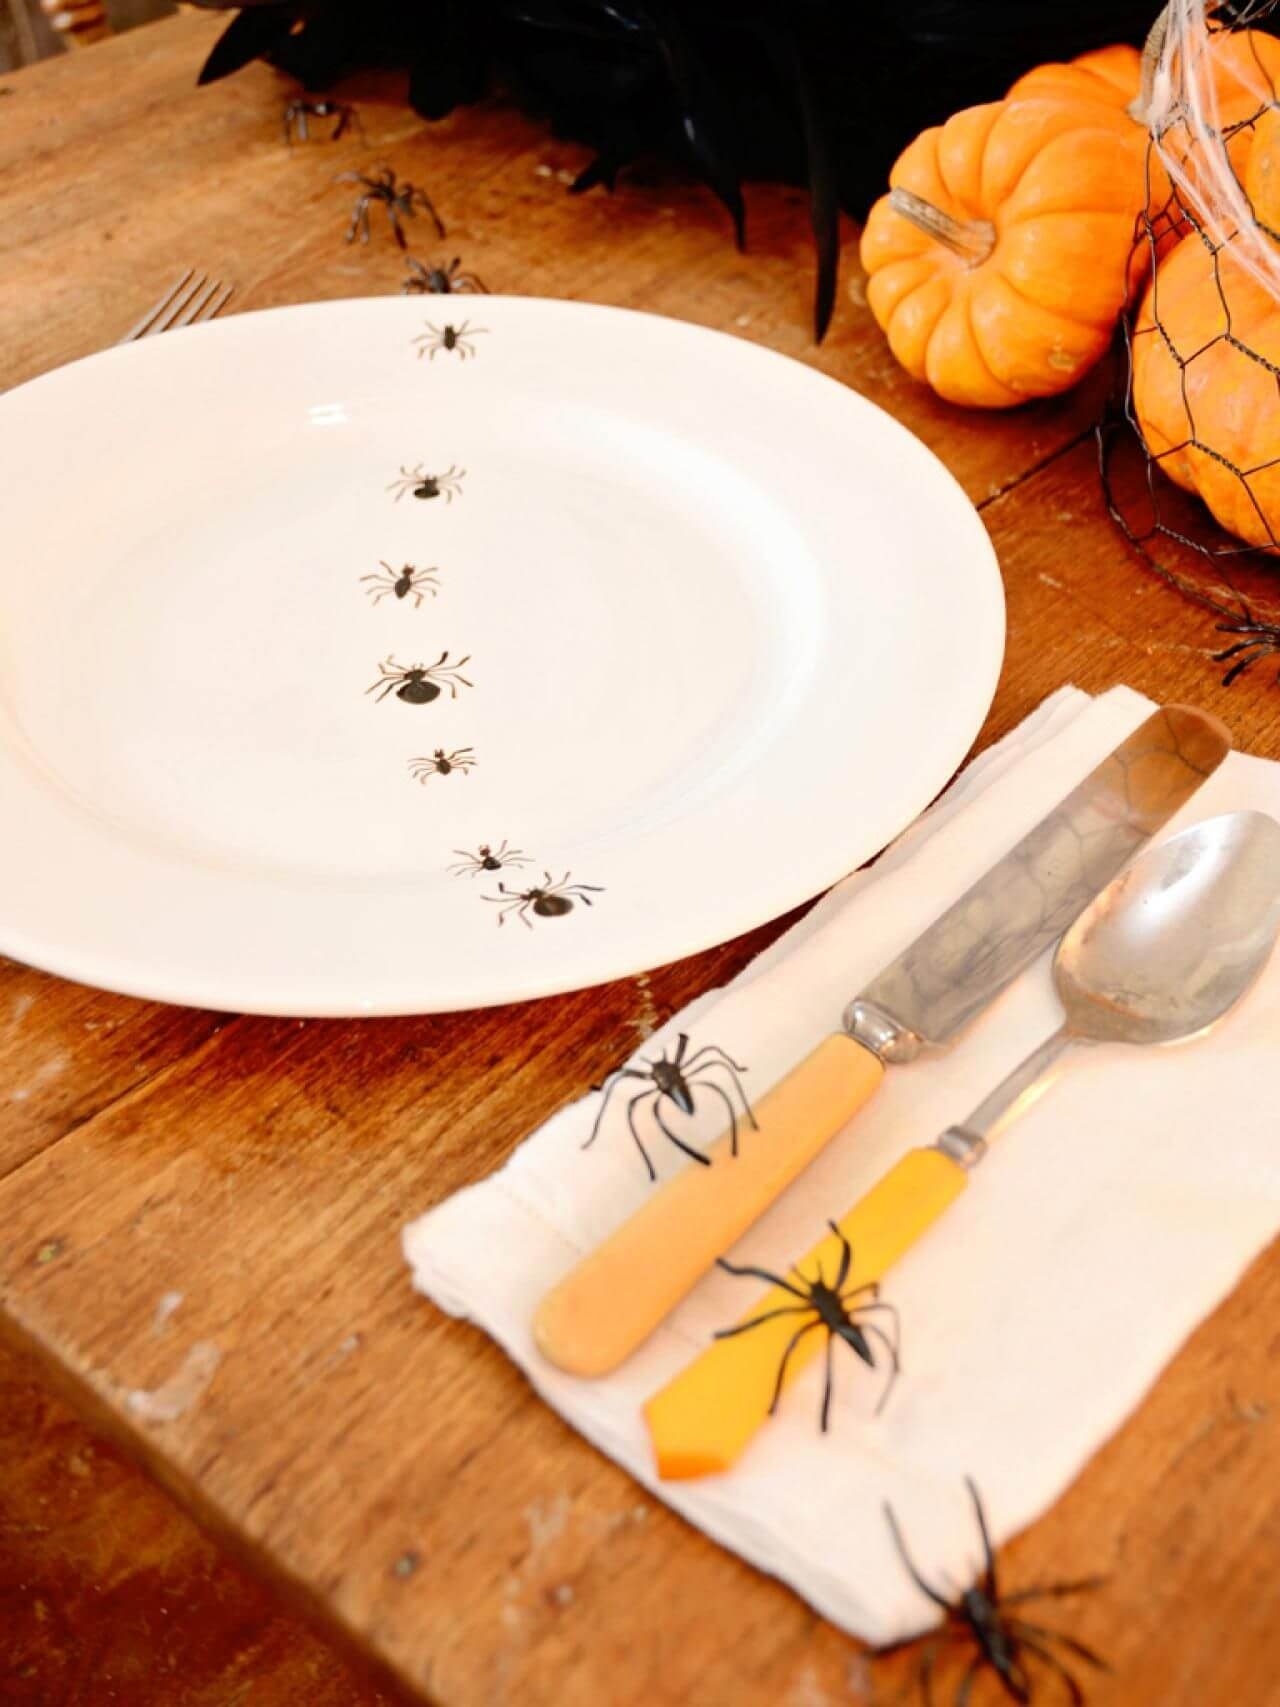 Spider on the plate decoration for Halloween